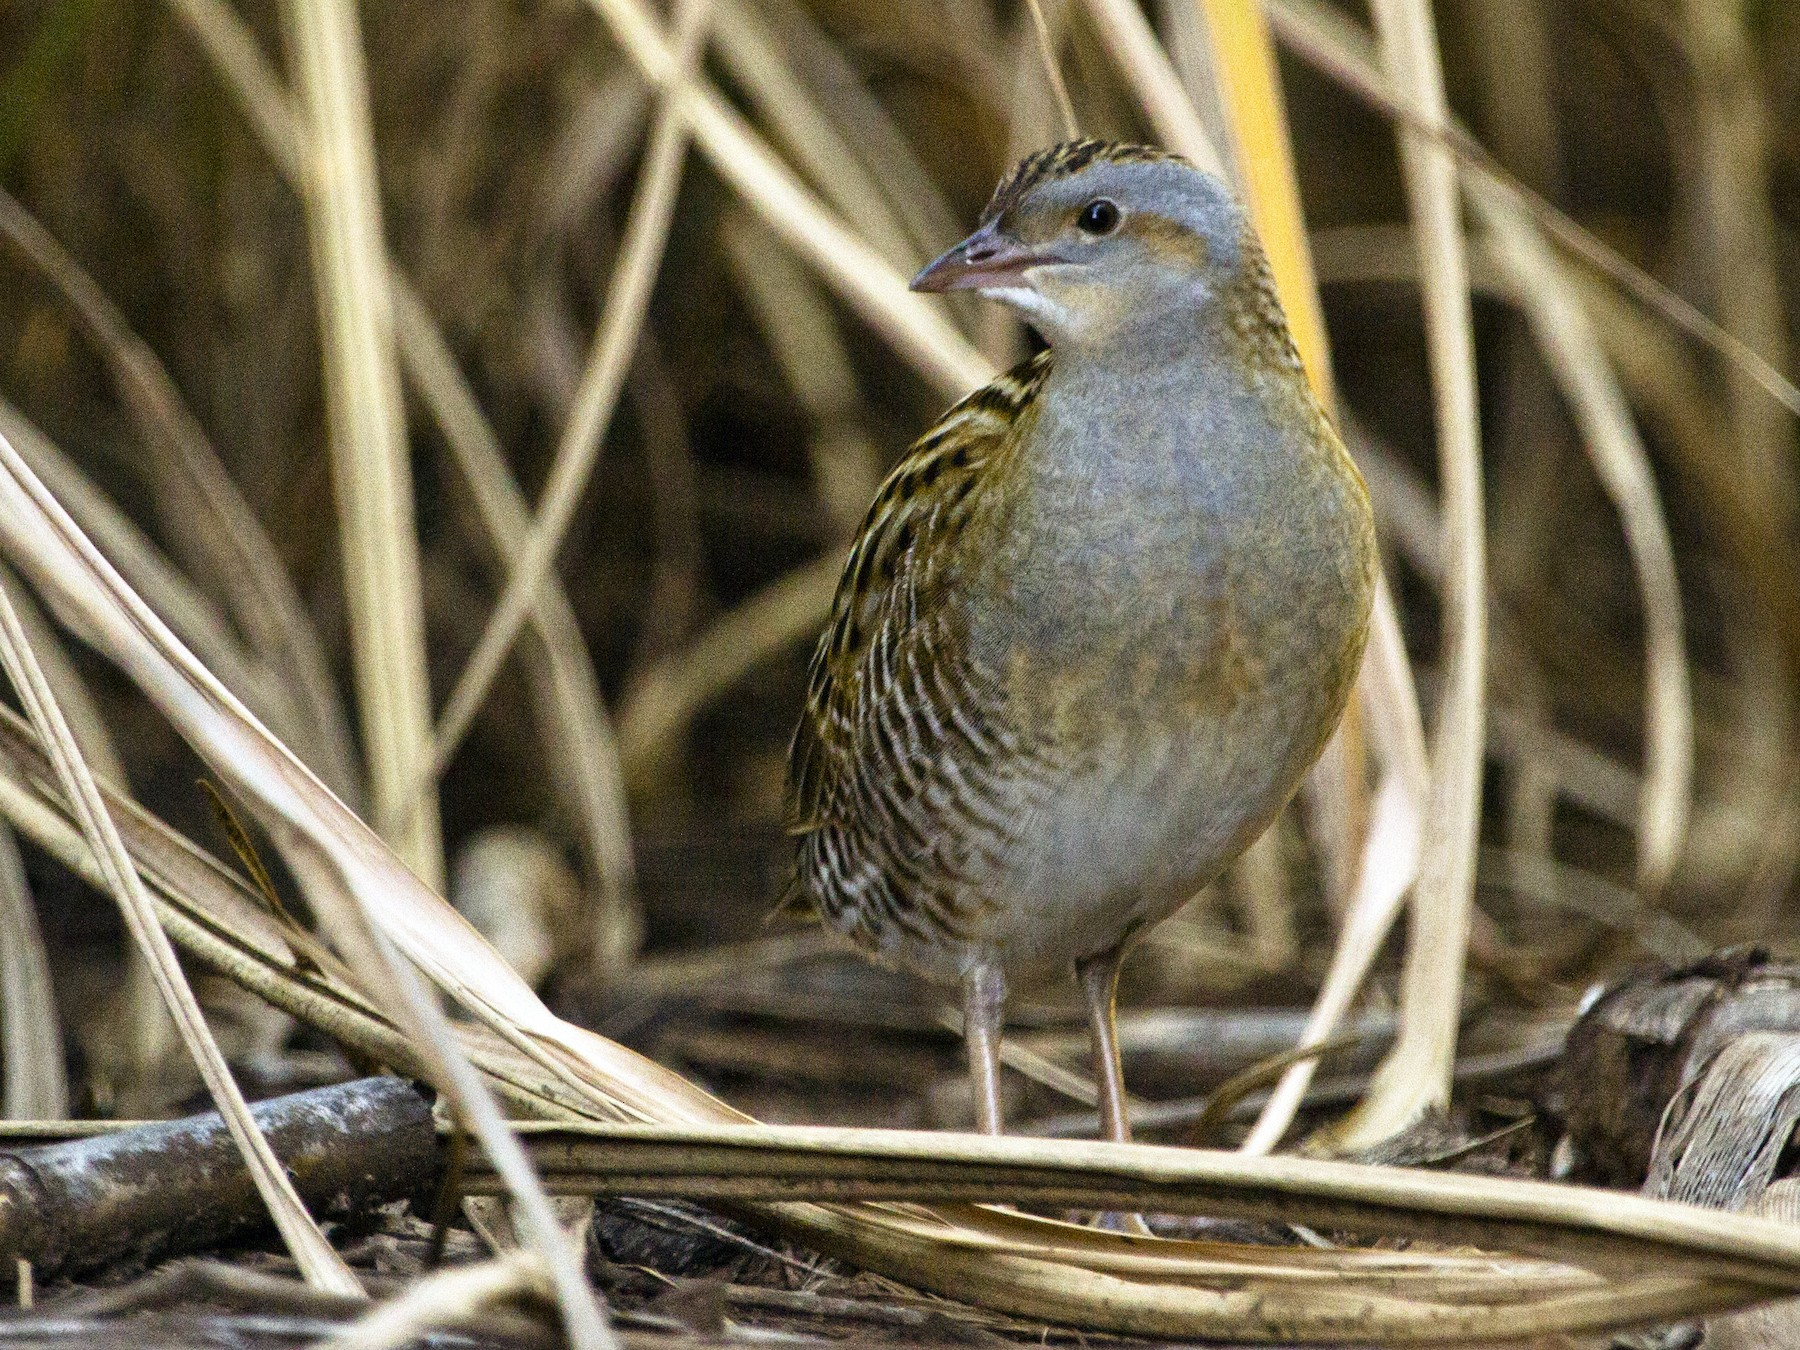 Corn Crake - Phil Stouffer